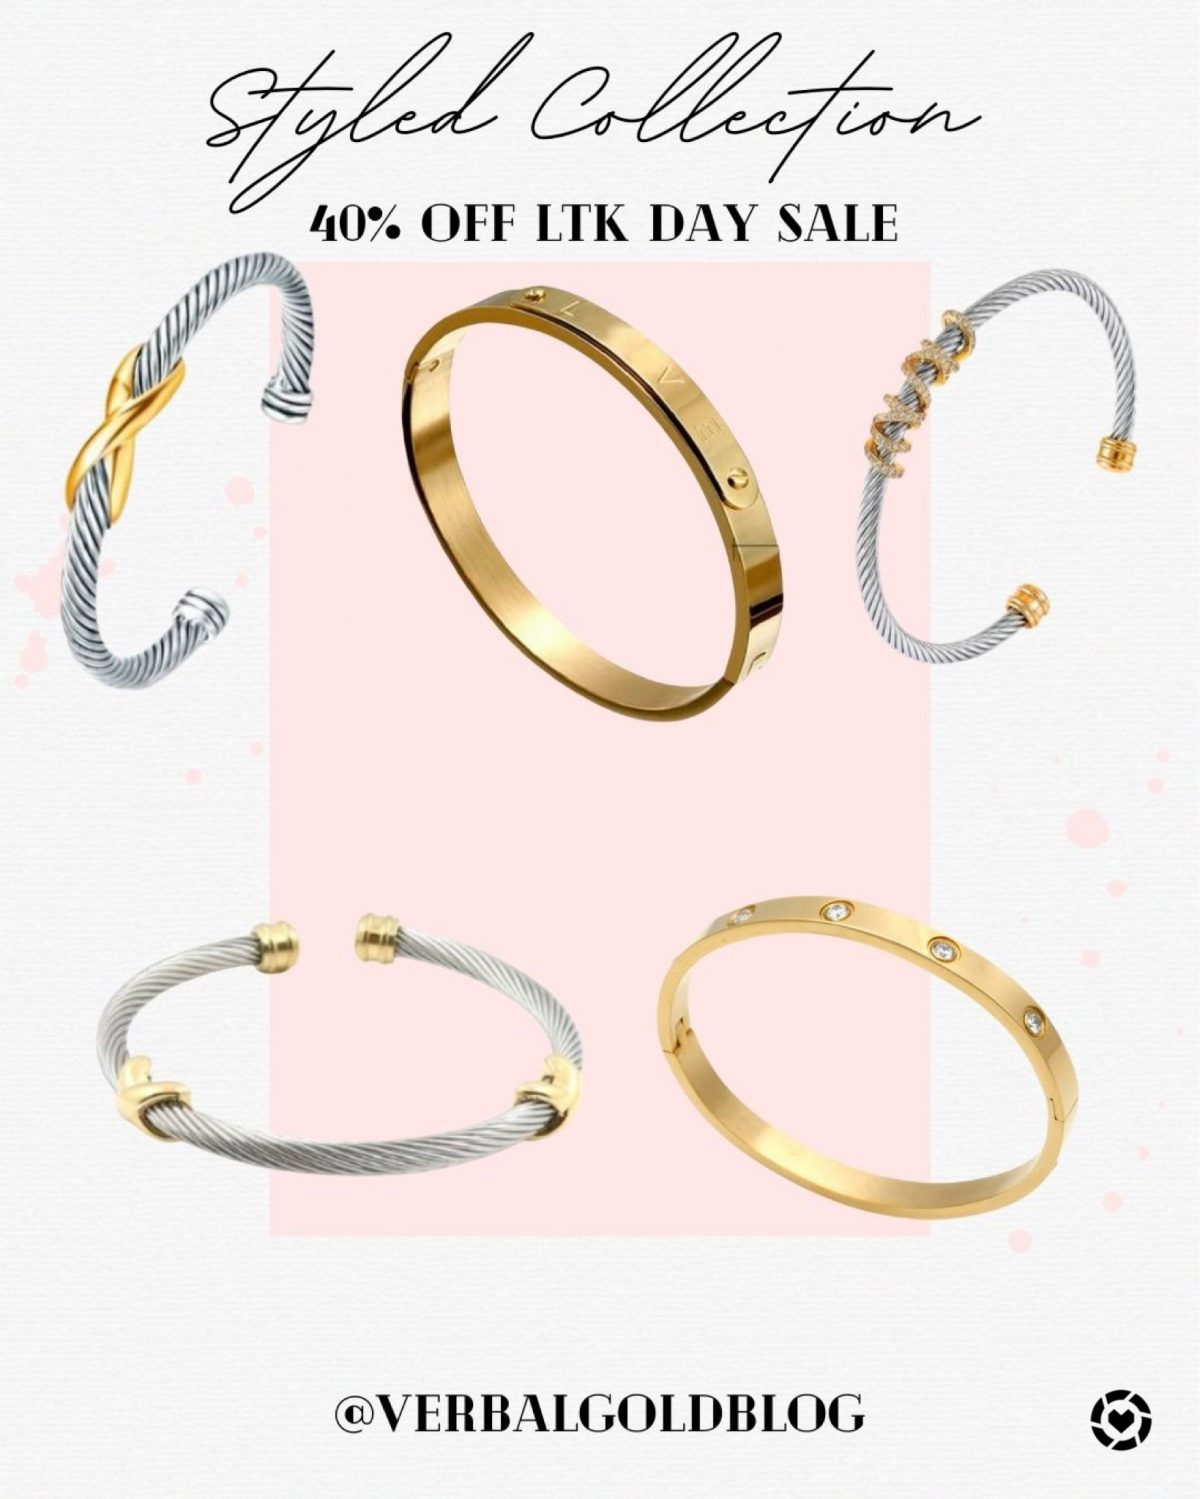 LTK GIFTING EVENT + EXCLUSIVE SALES